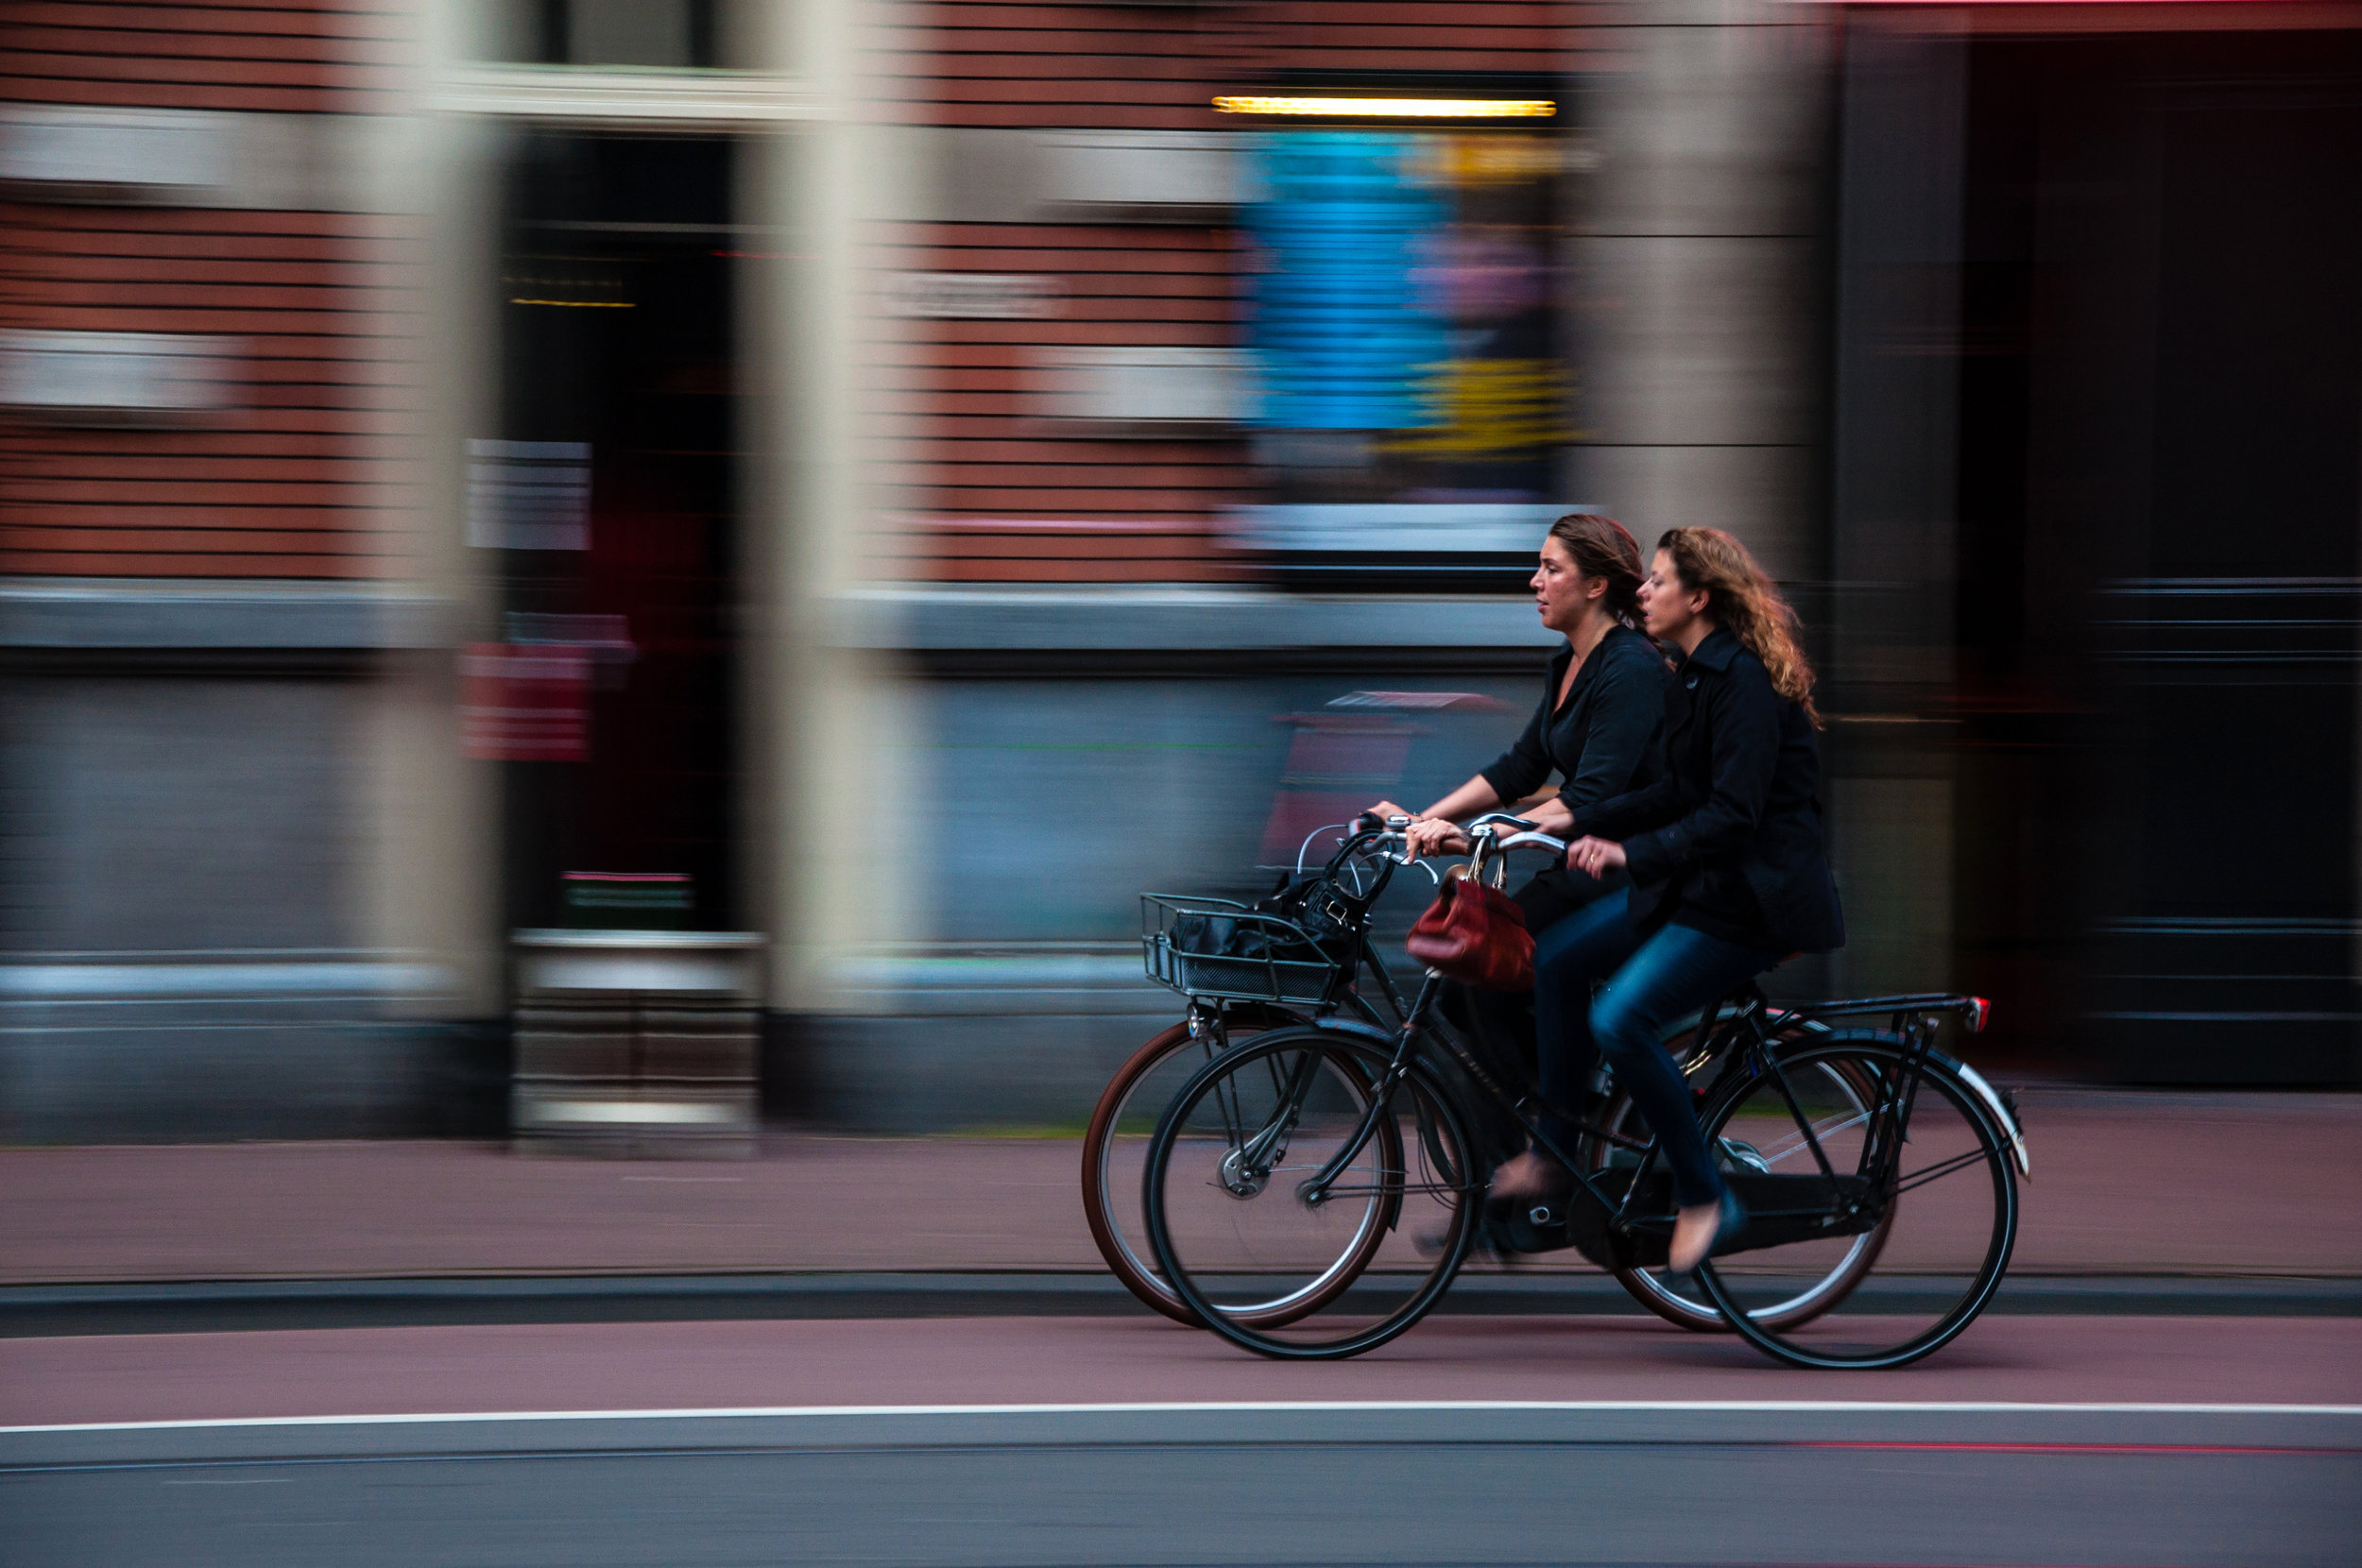 Walking or cycling to work will result in a significant reduction to your annual carbon footprint